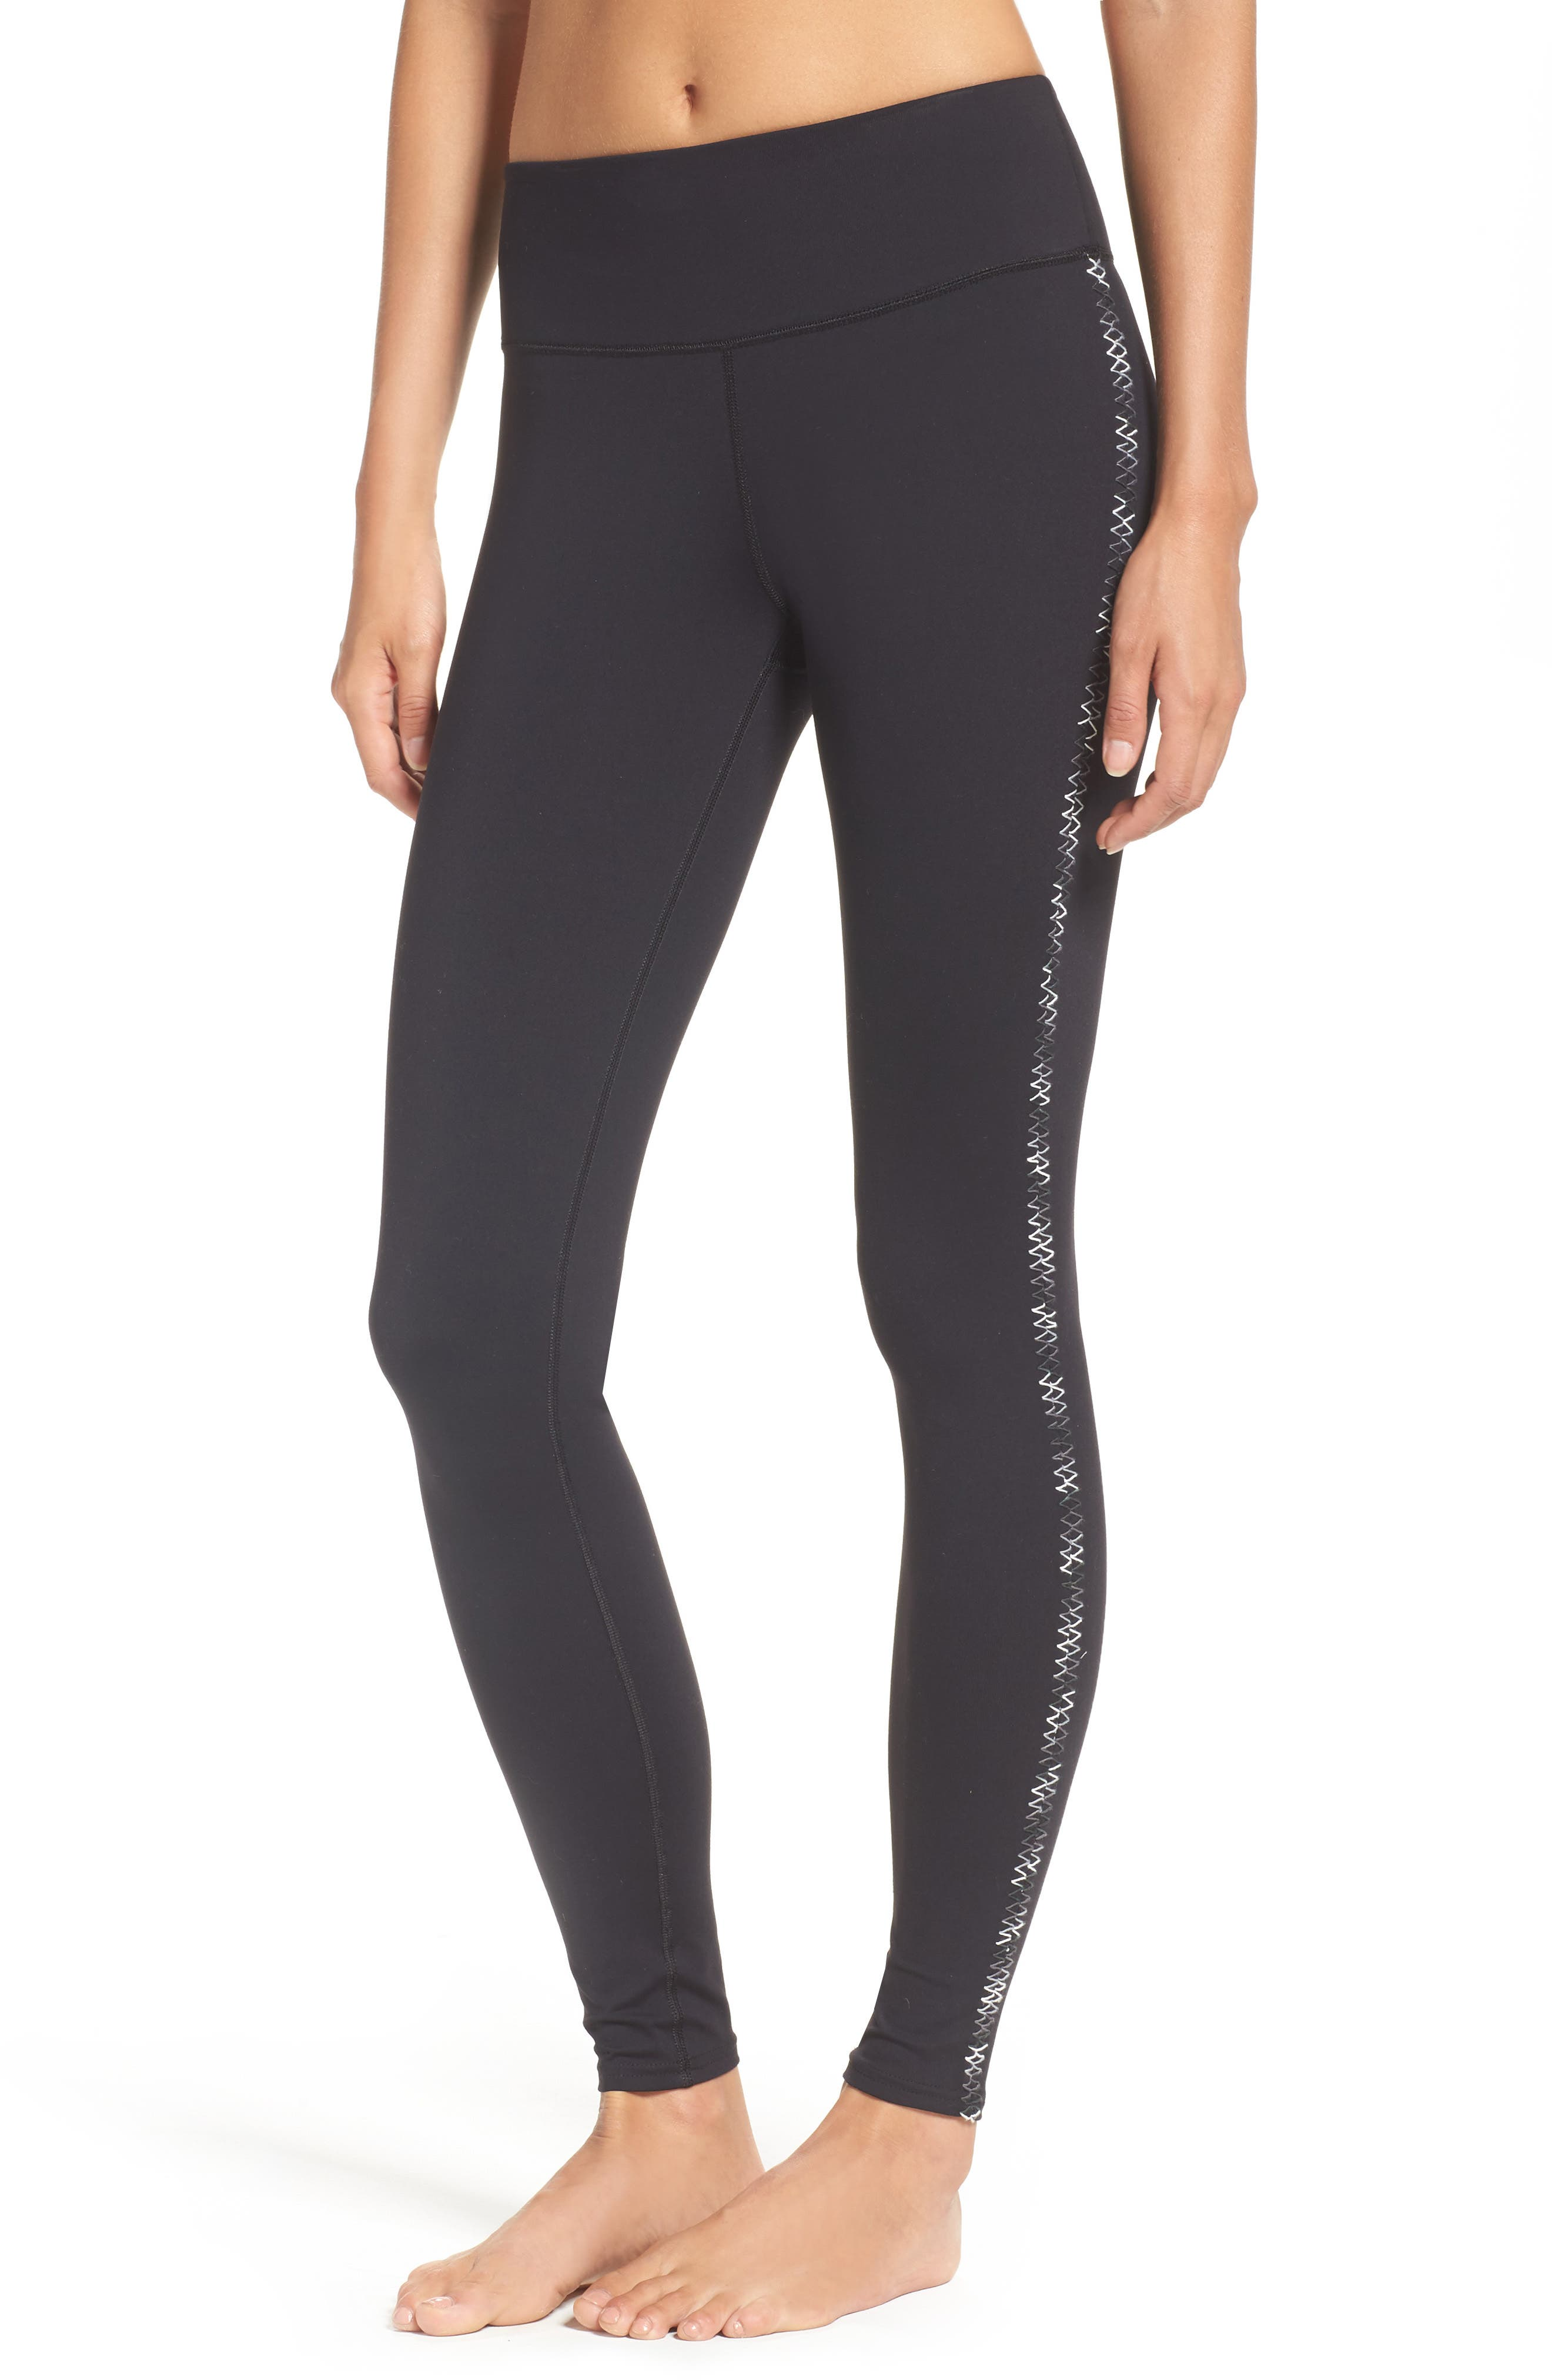 Stitch in Time Leggings,                             Main thumbnail 1, color,                             Black